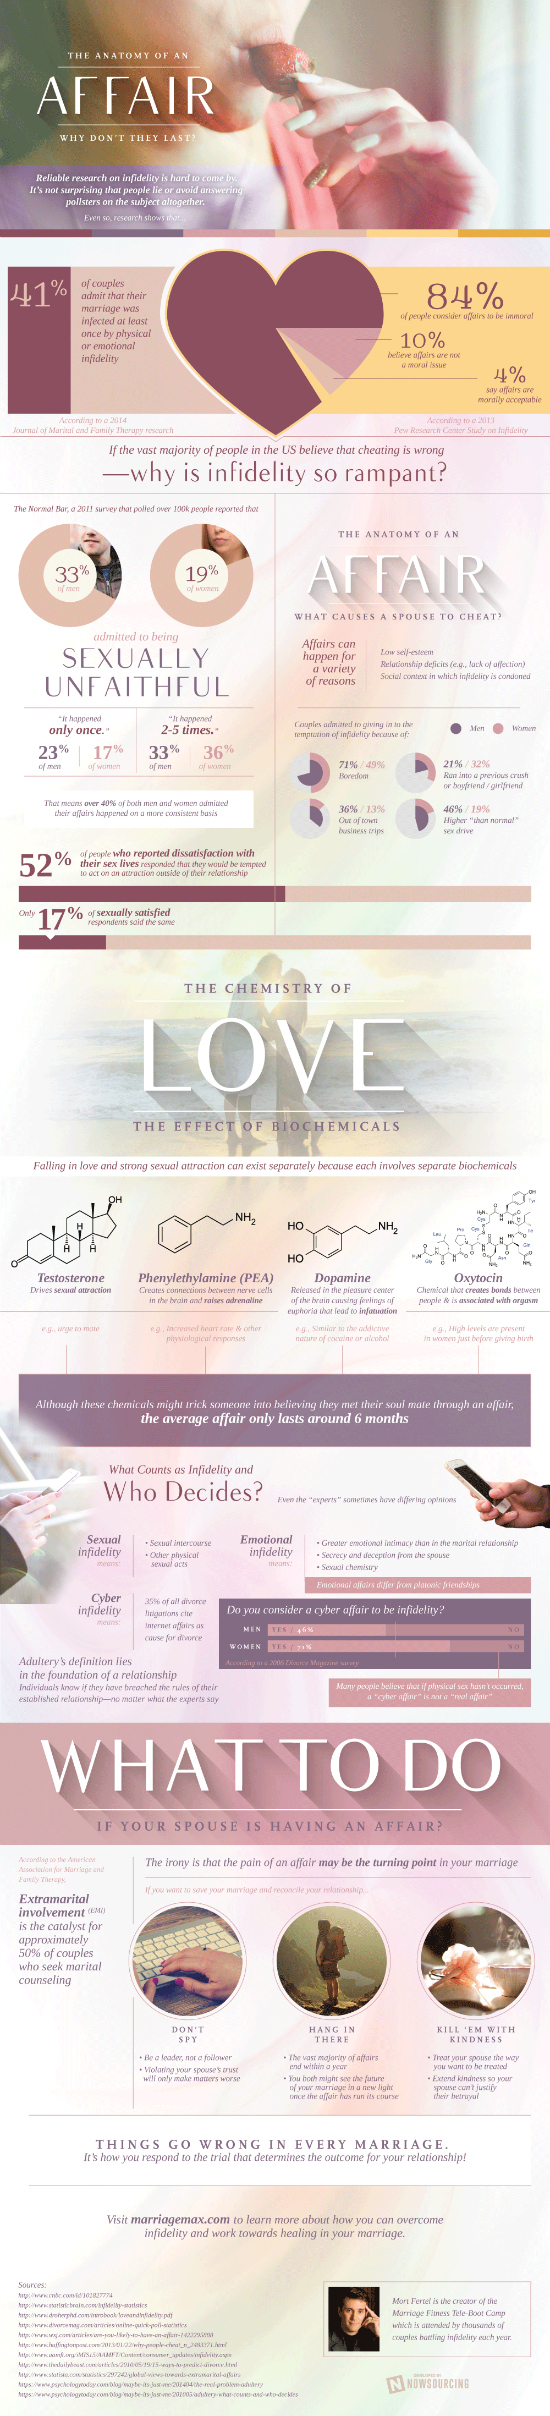 why-affairs-dont-last-infographic 550px